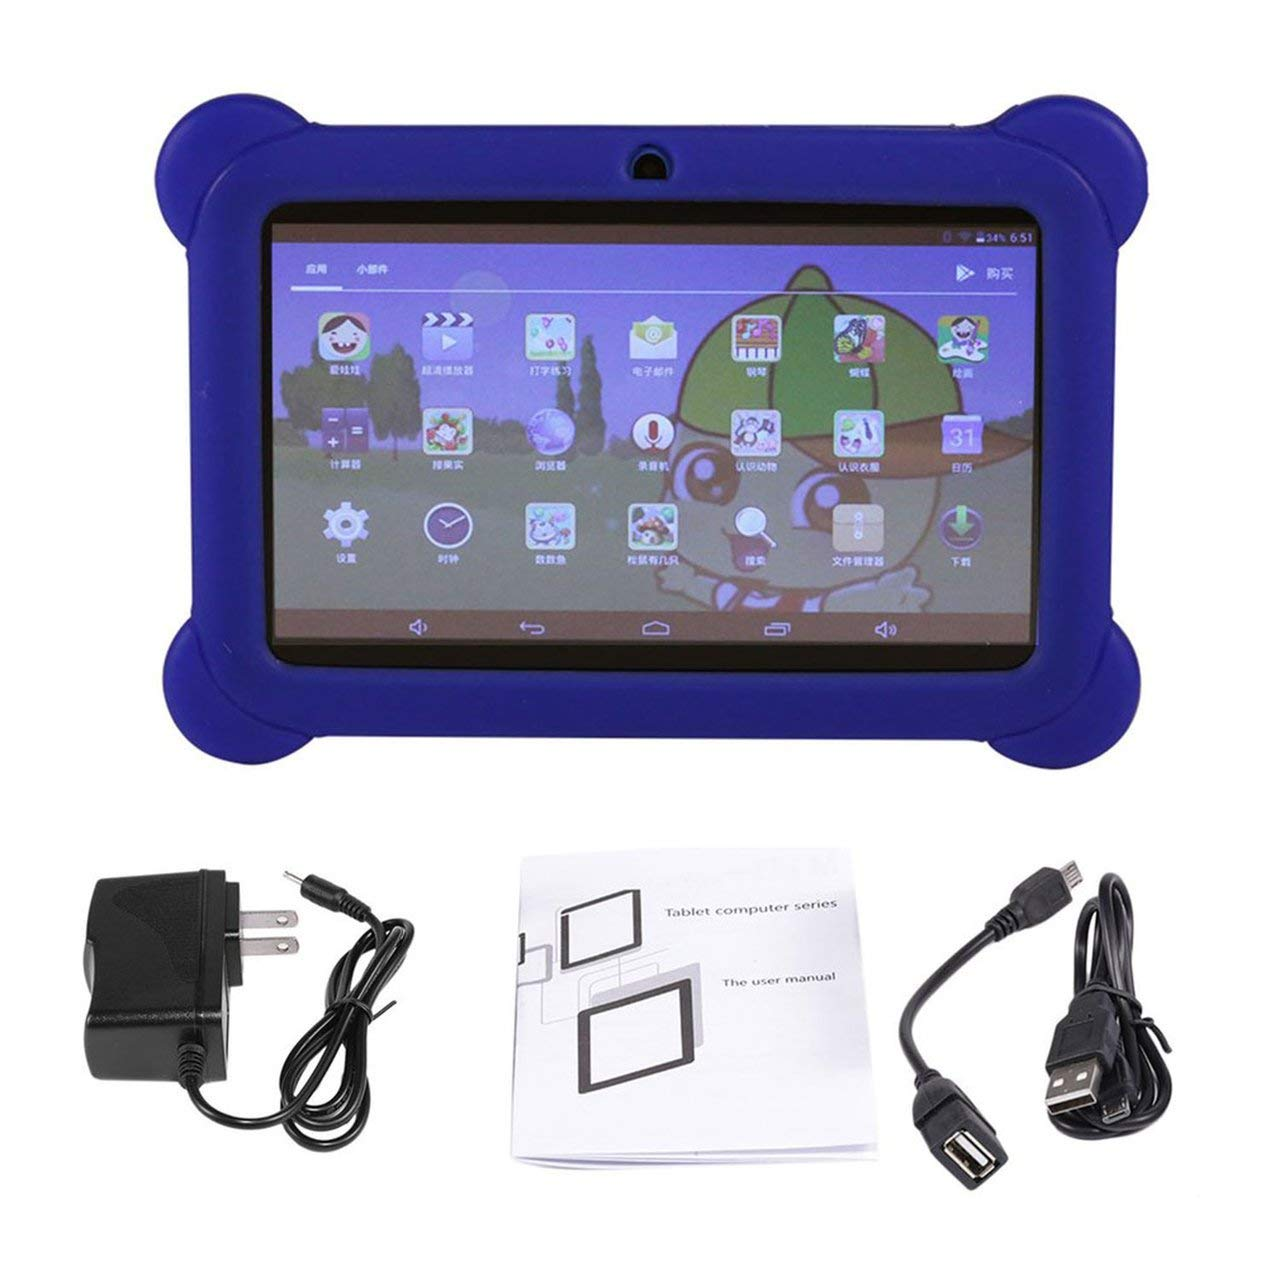 7 inch Screen Children Tablet 2G+16G A33 Quad Core Dual Camera 1024600 for Android 4.4 Tablet PC with Silicone Cover by NeanTak-us